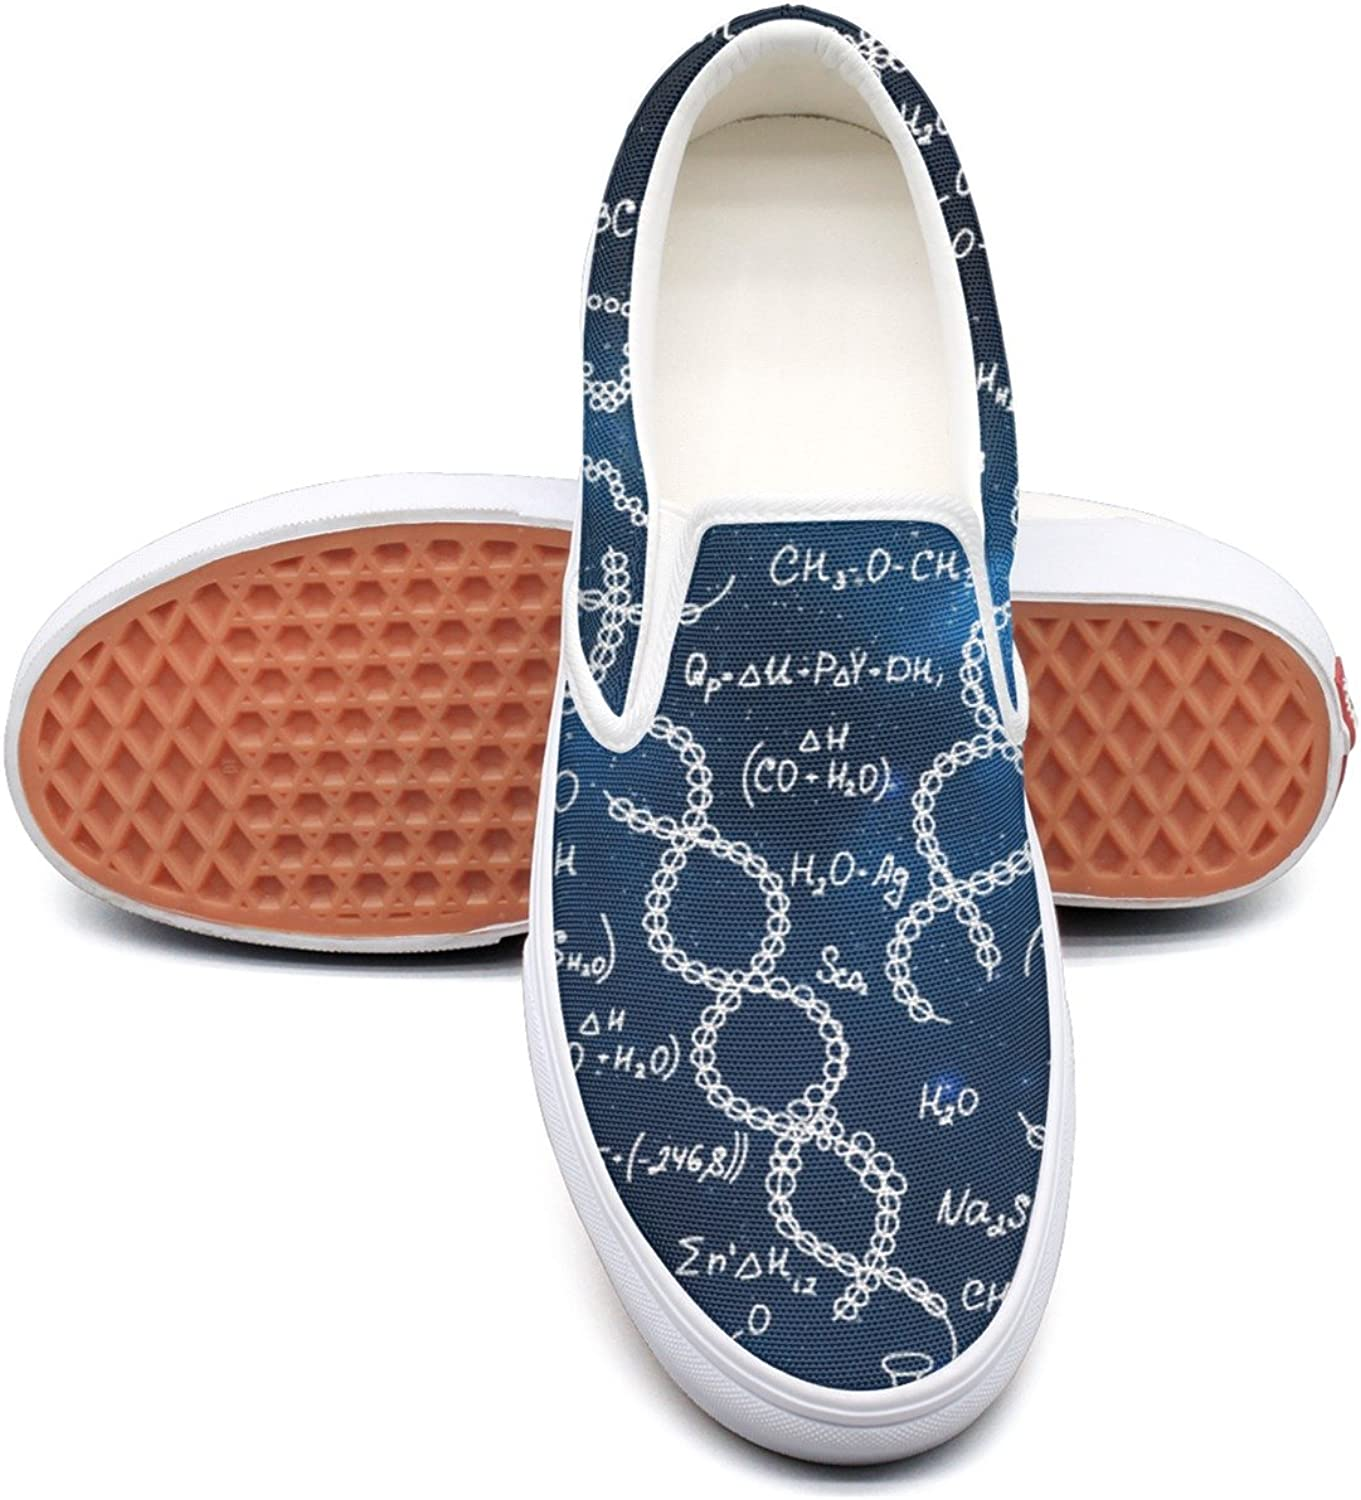 SEERTED Galaxy Chemistry Scientific Formula Comfortable Sneakers for Standing All Day